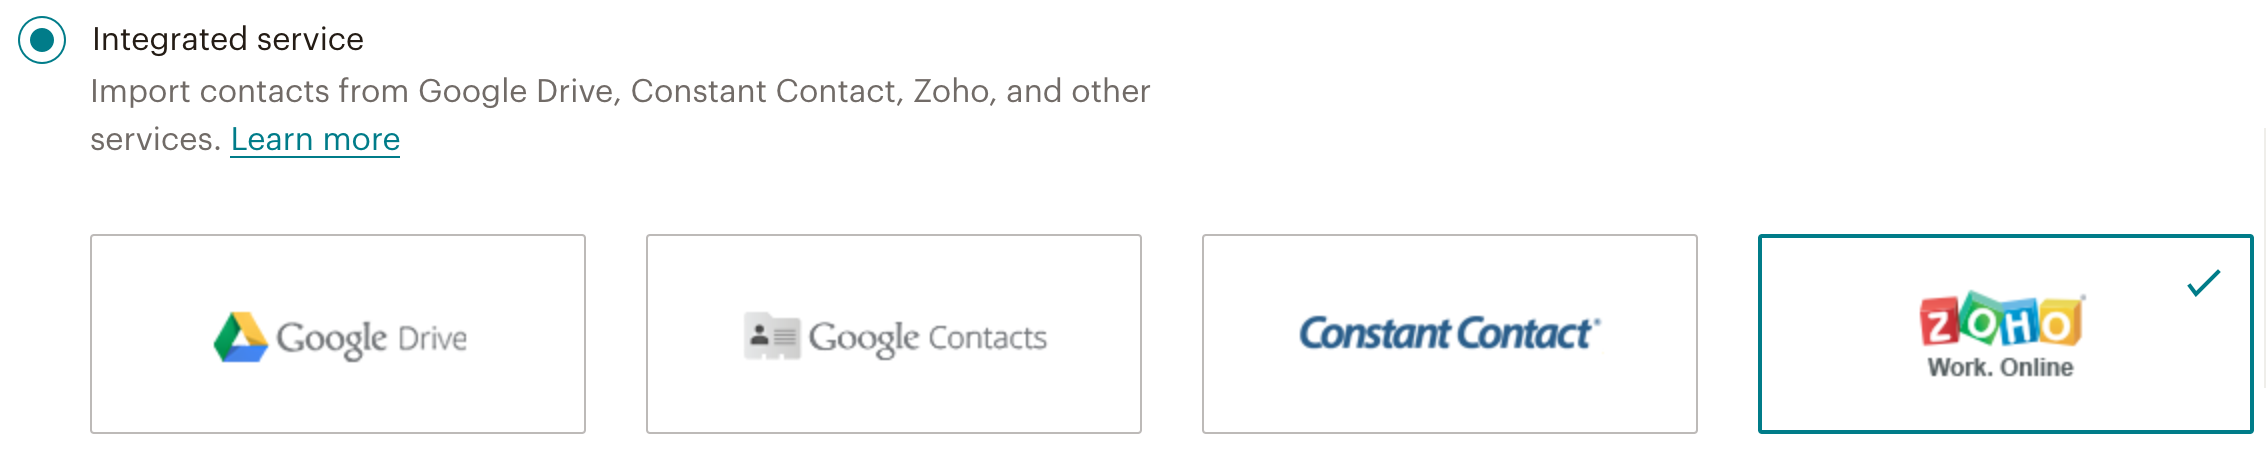 Import-Integrated-Service-Zoho